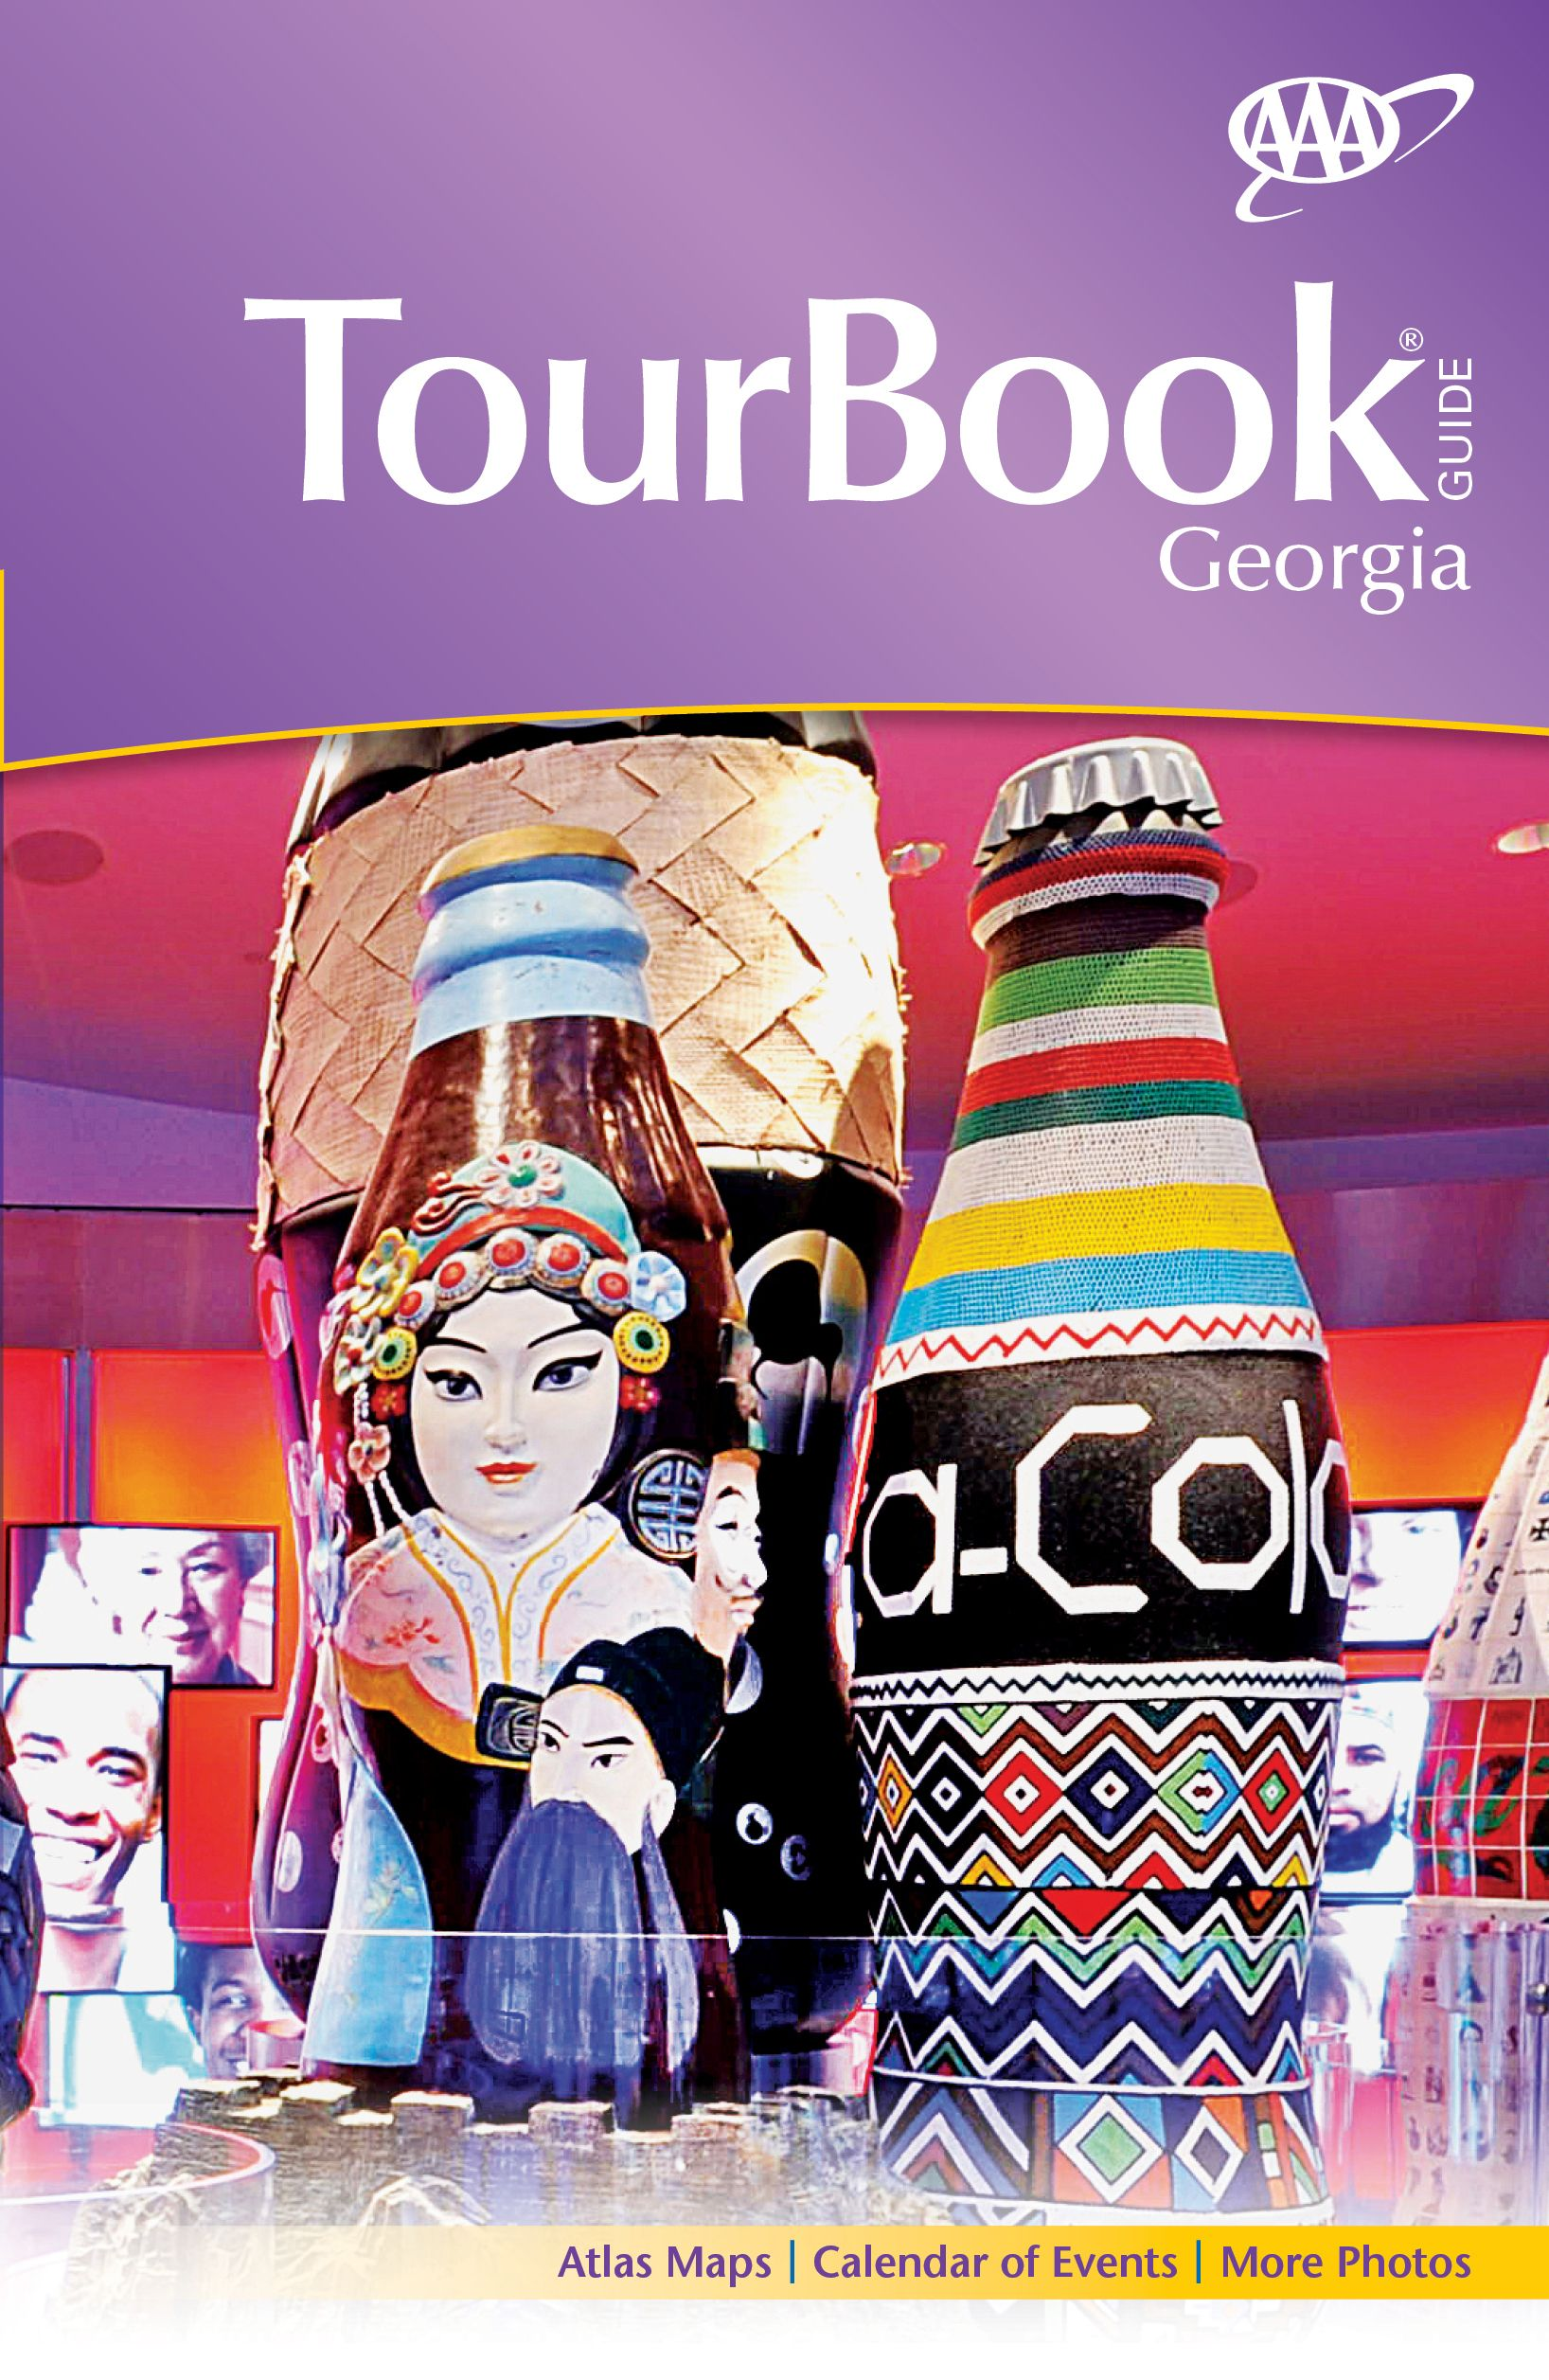 Planning a summer trip pick up a aaa tourbook guide for